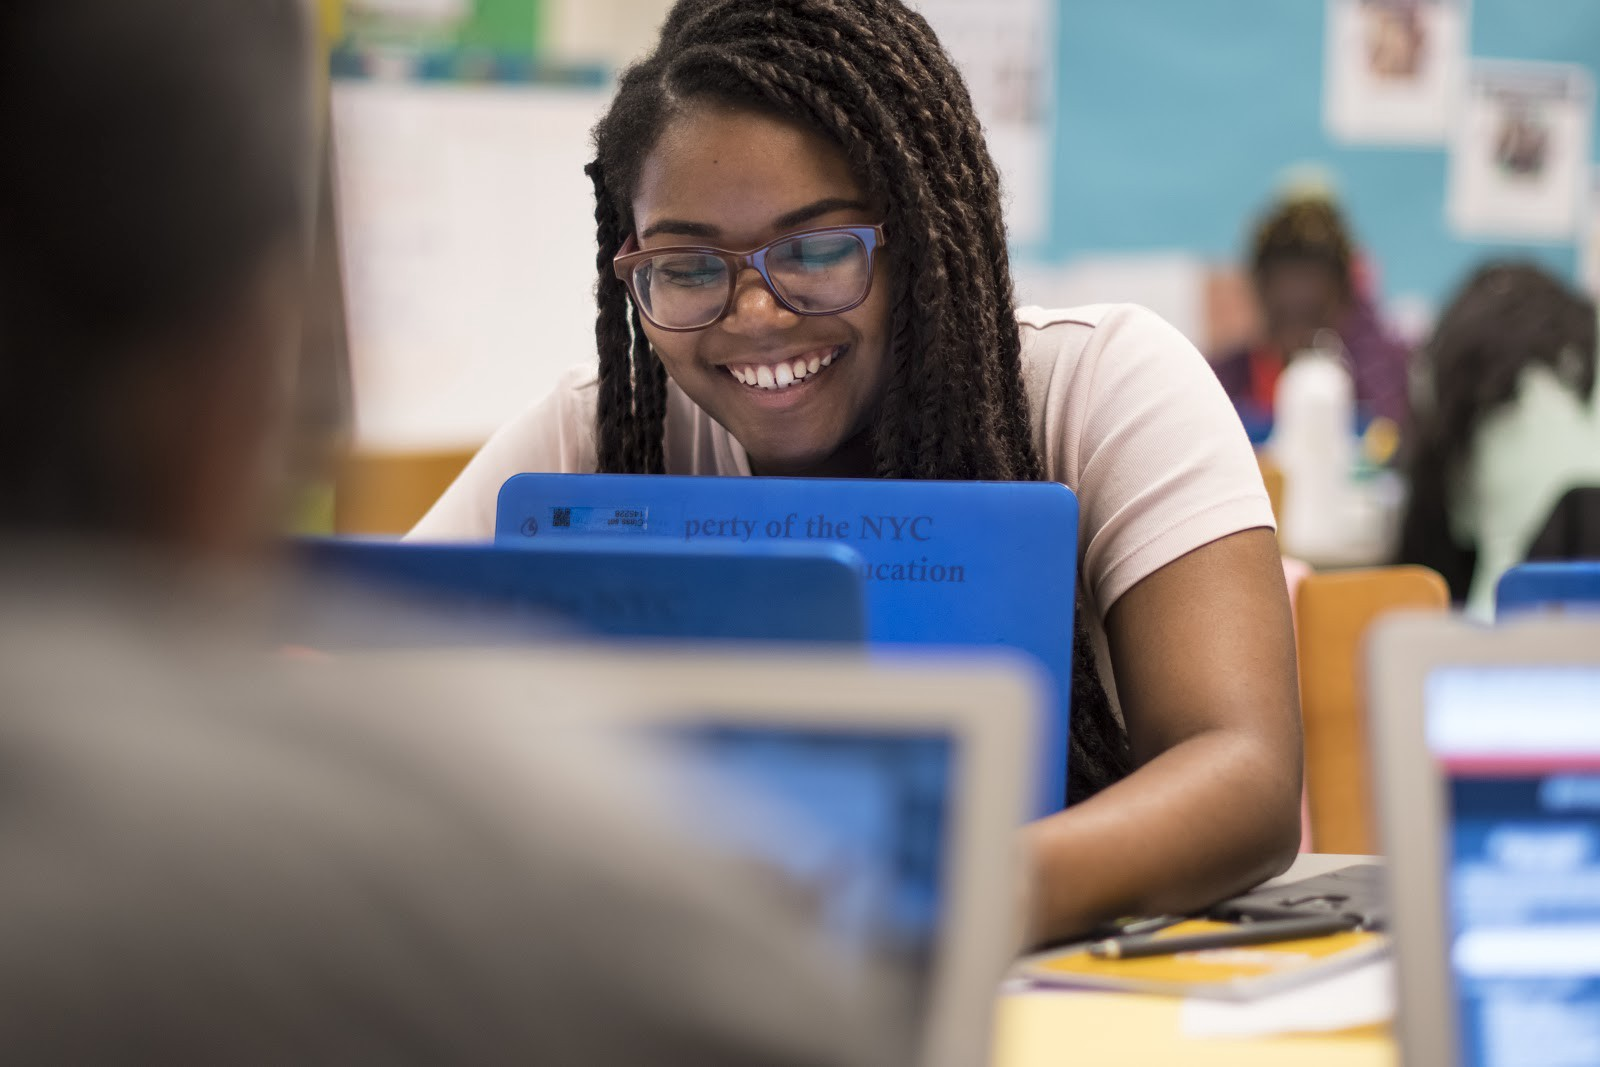 Helping girls build their future in tech girls who code medium weve specially designed campus to give girls an edge for college with in depth learning and a project based approach perfect for getting girls a head ccuart Images